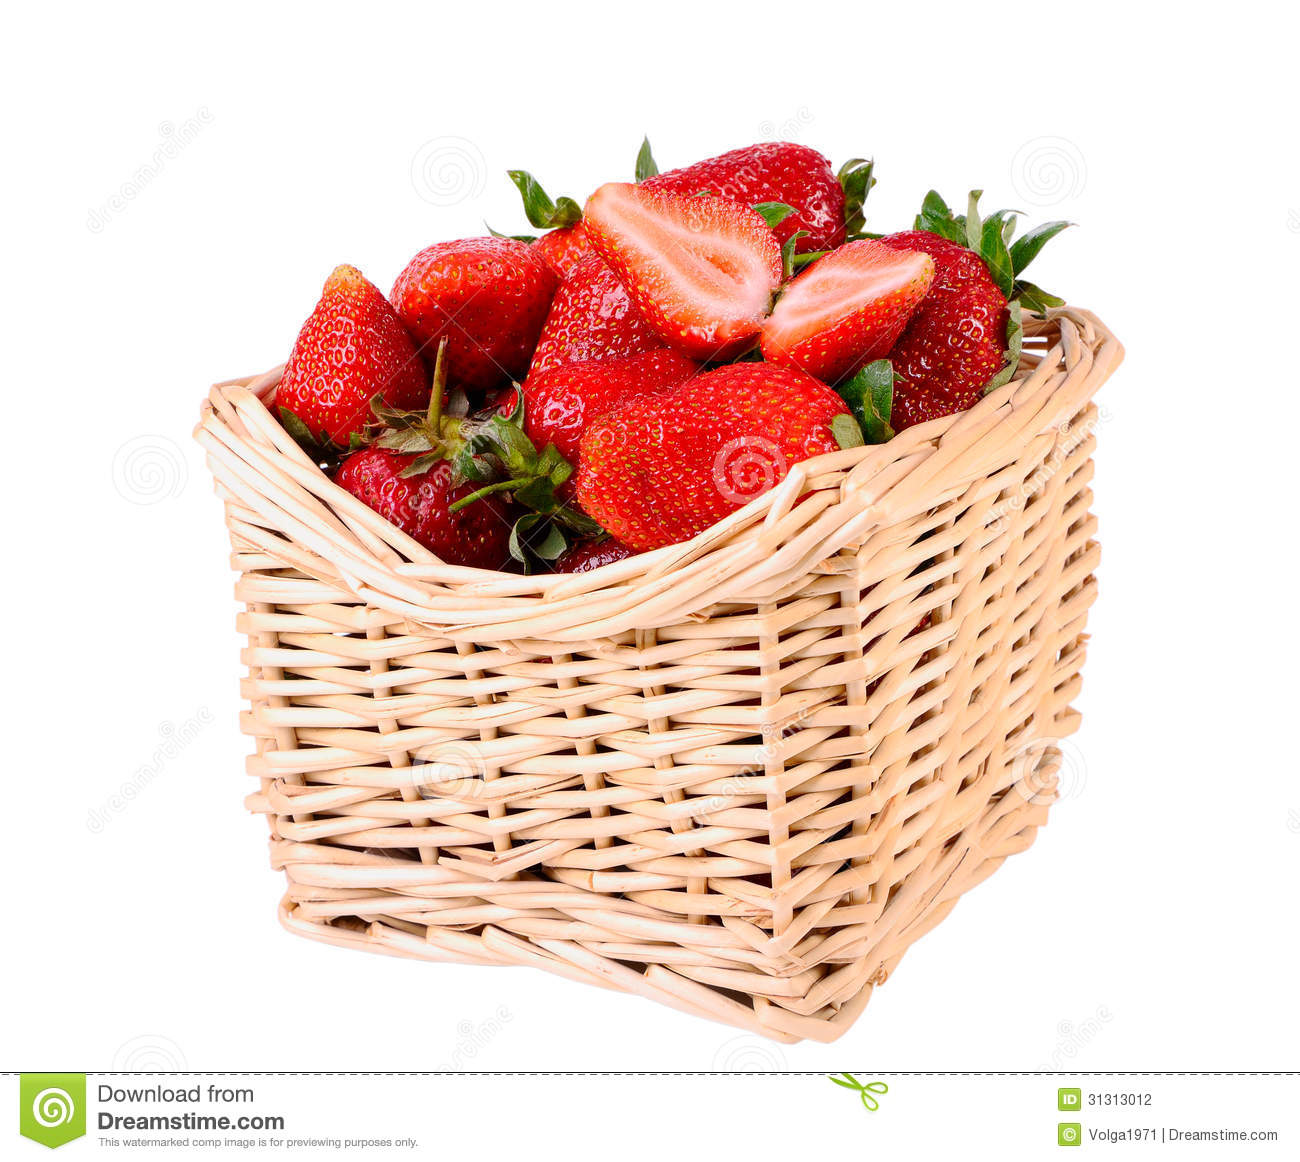 Strawberries In A Basket Stock Photography - Image: 31313012